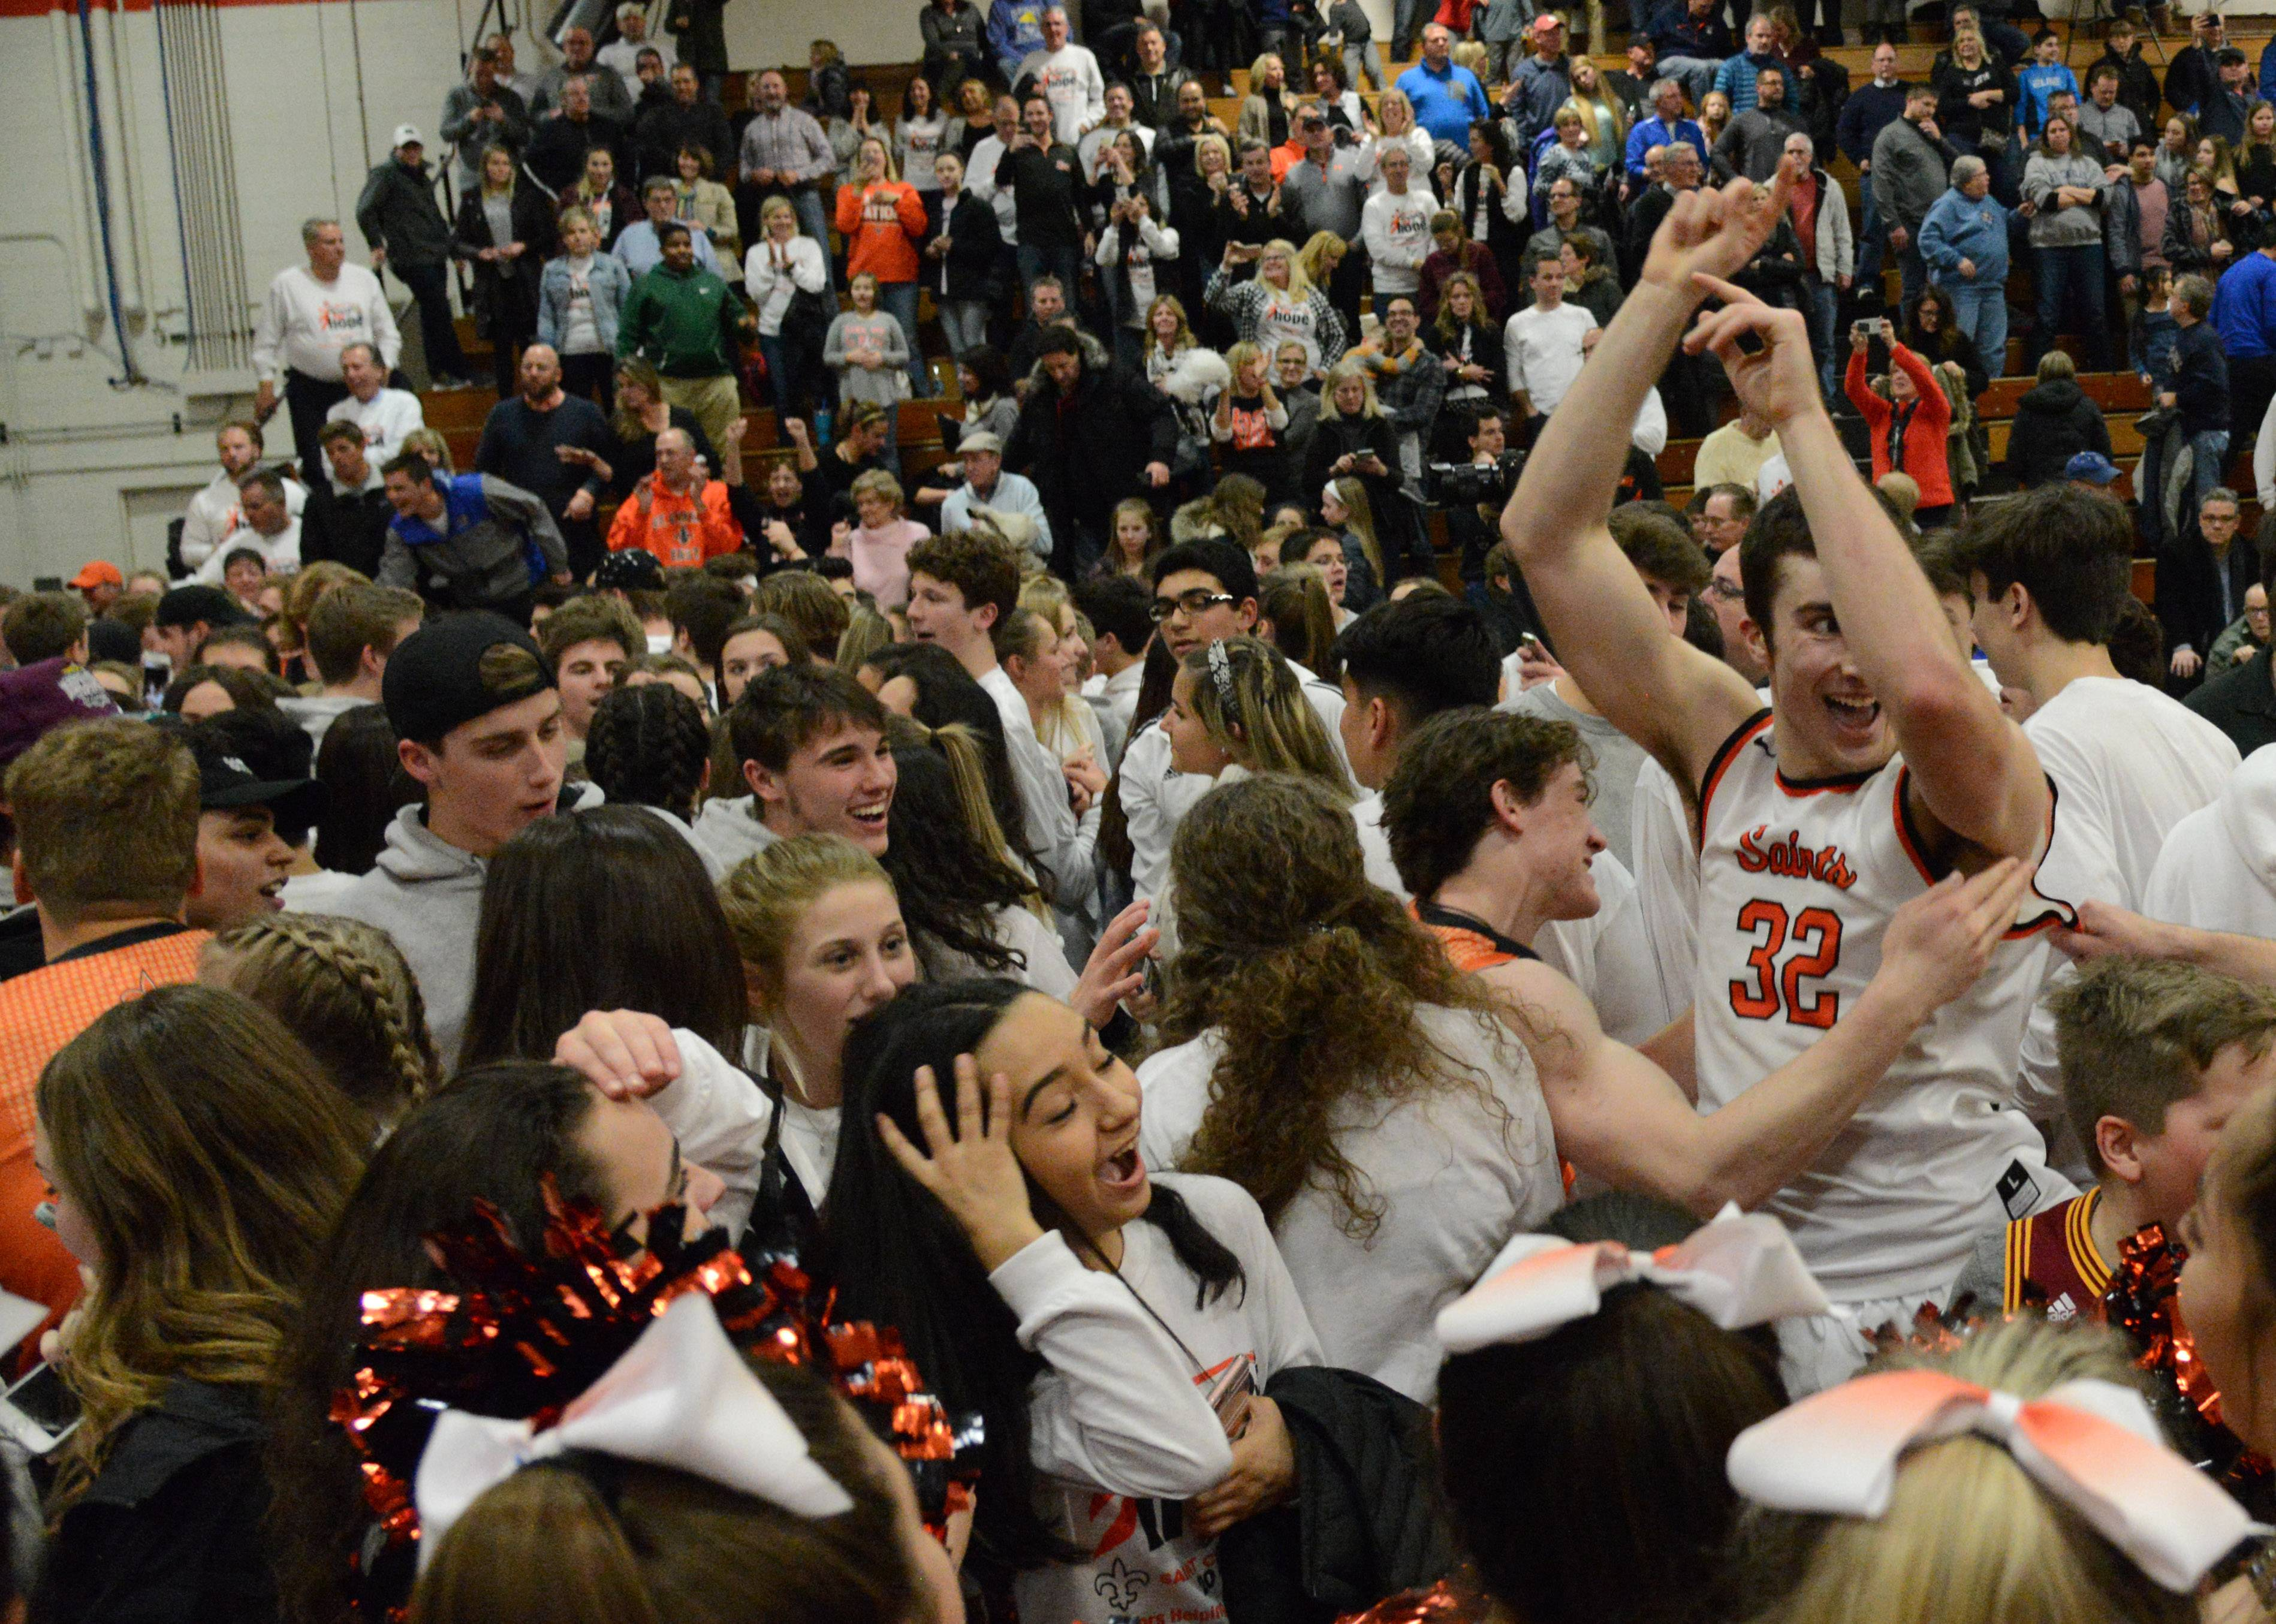 St. Charles East fans surround Justin Hardy after his last second shot beat rival St. Charles North during Friday's game at East.